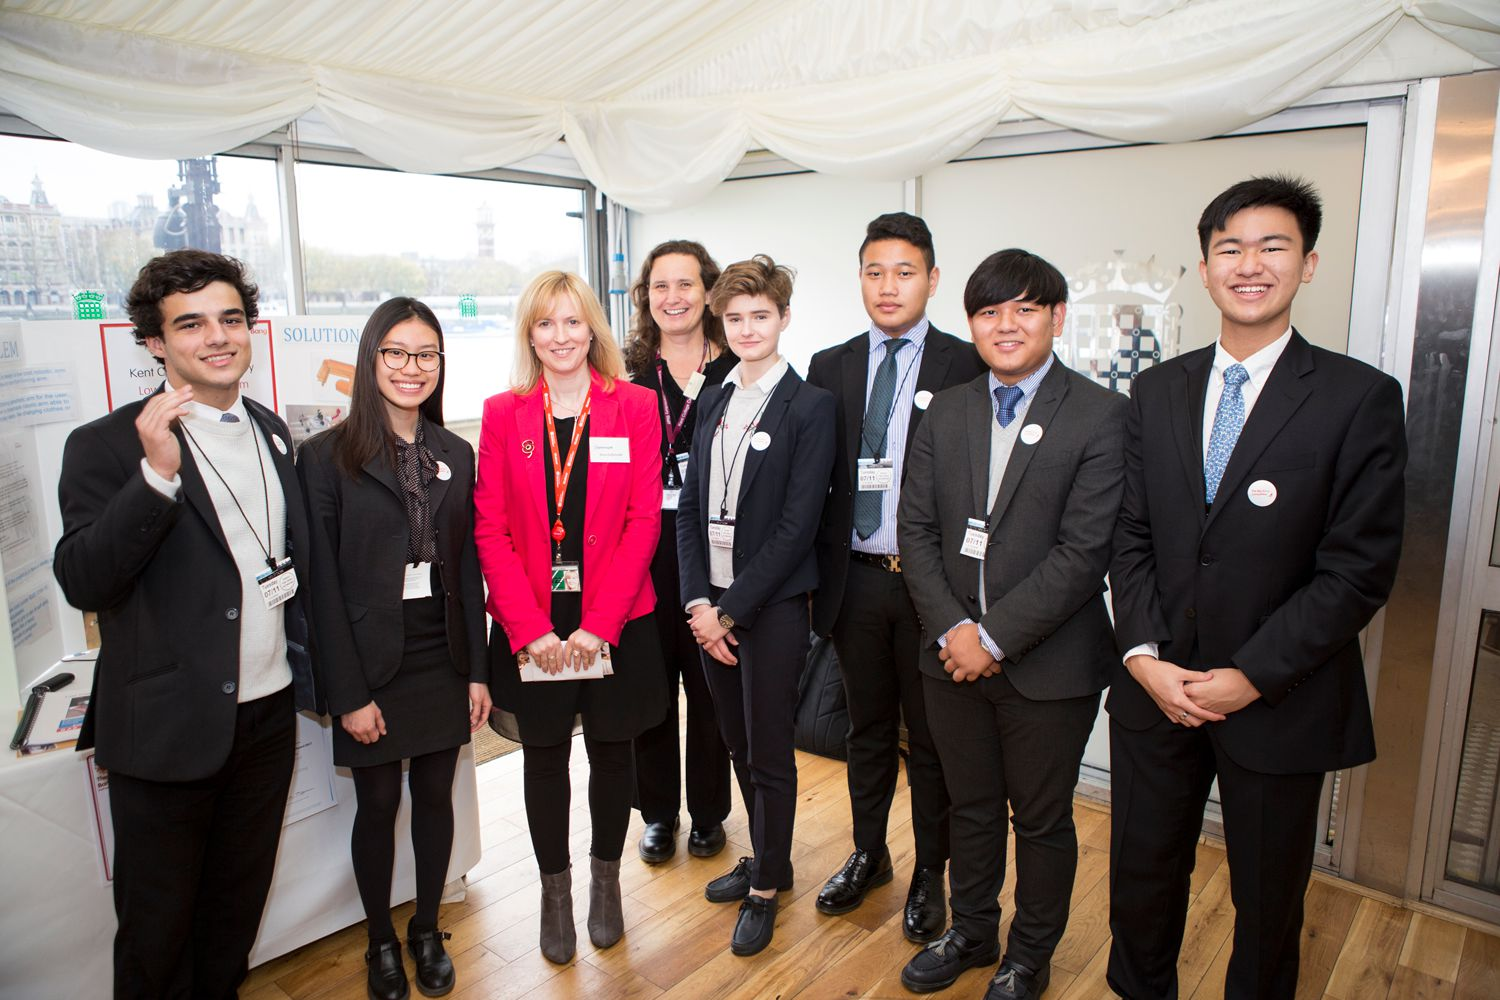 Young Engineers of the Year winners visit Parliament